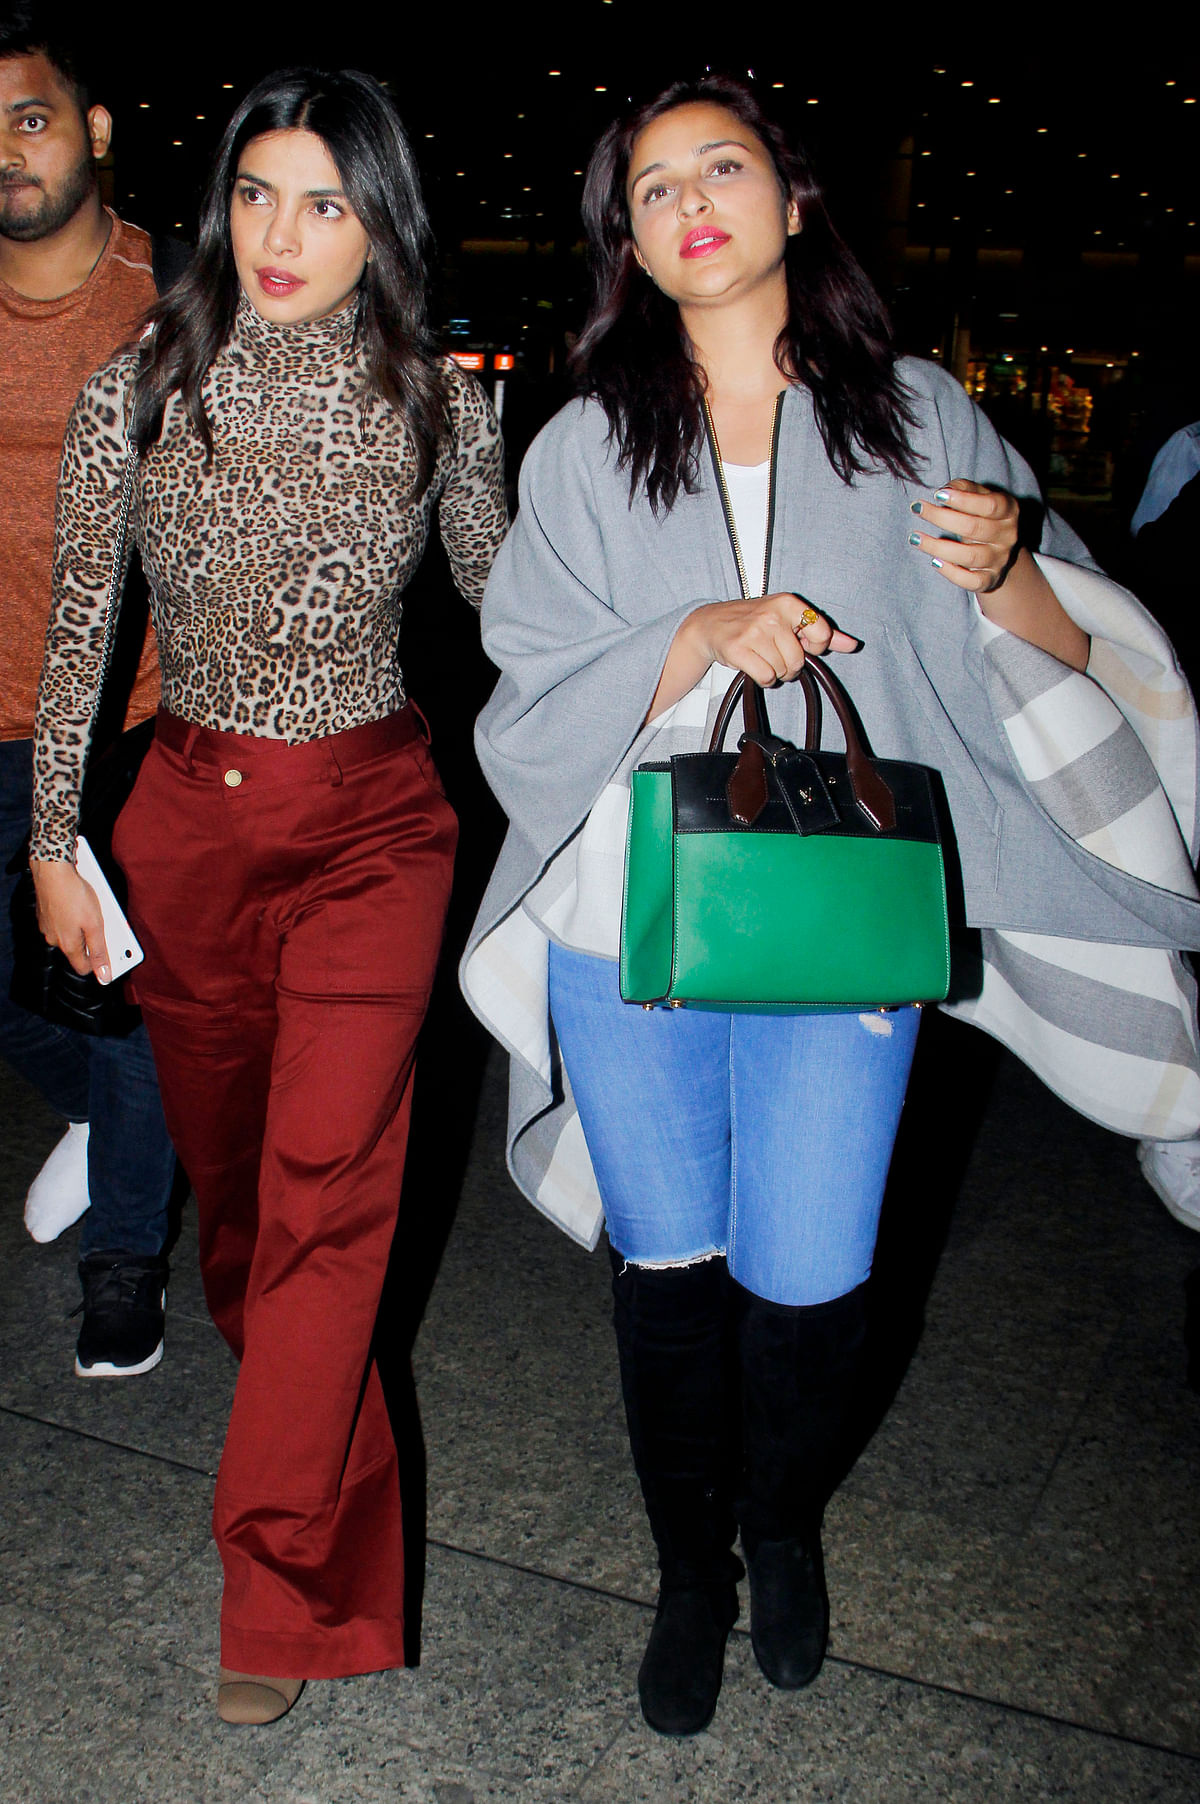 Priyanka and Parineeti Chopra spotted at the airport.